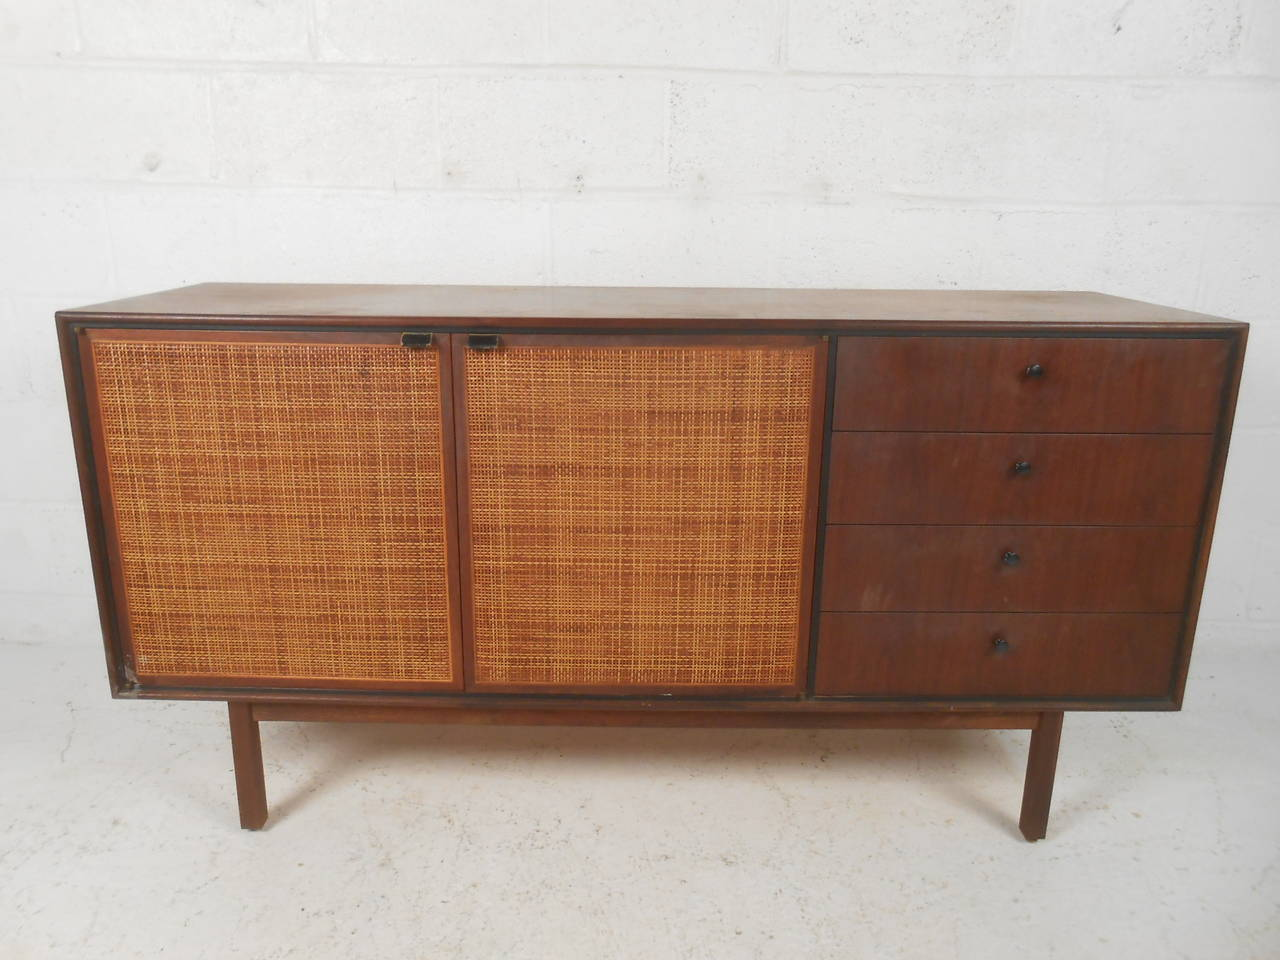 Superieur American Mid Century Modern Cane Front Credenza In The Style Of Jack  Cartwright For